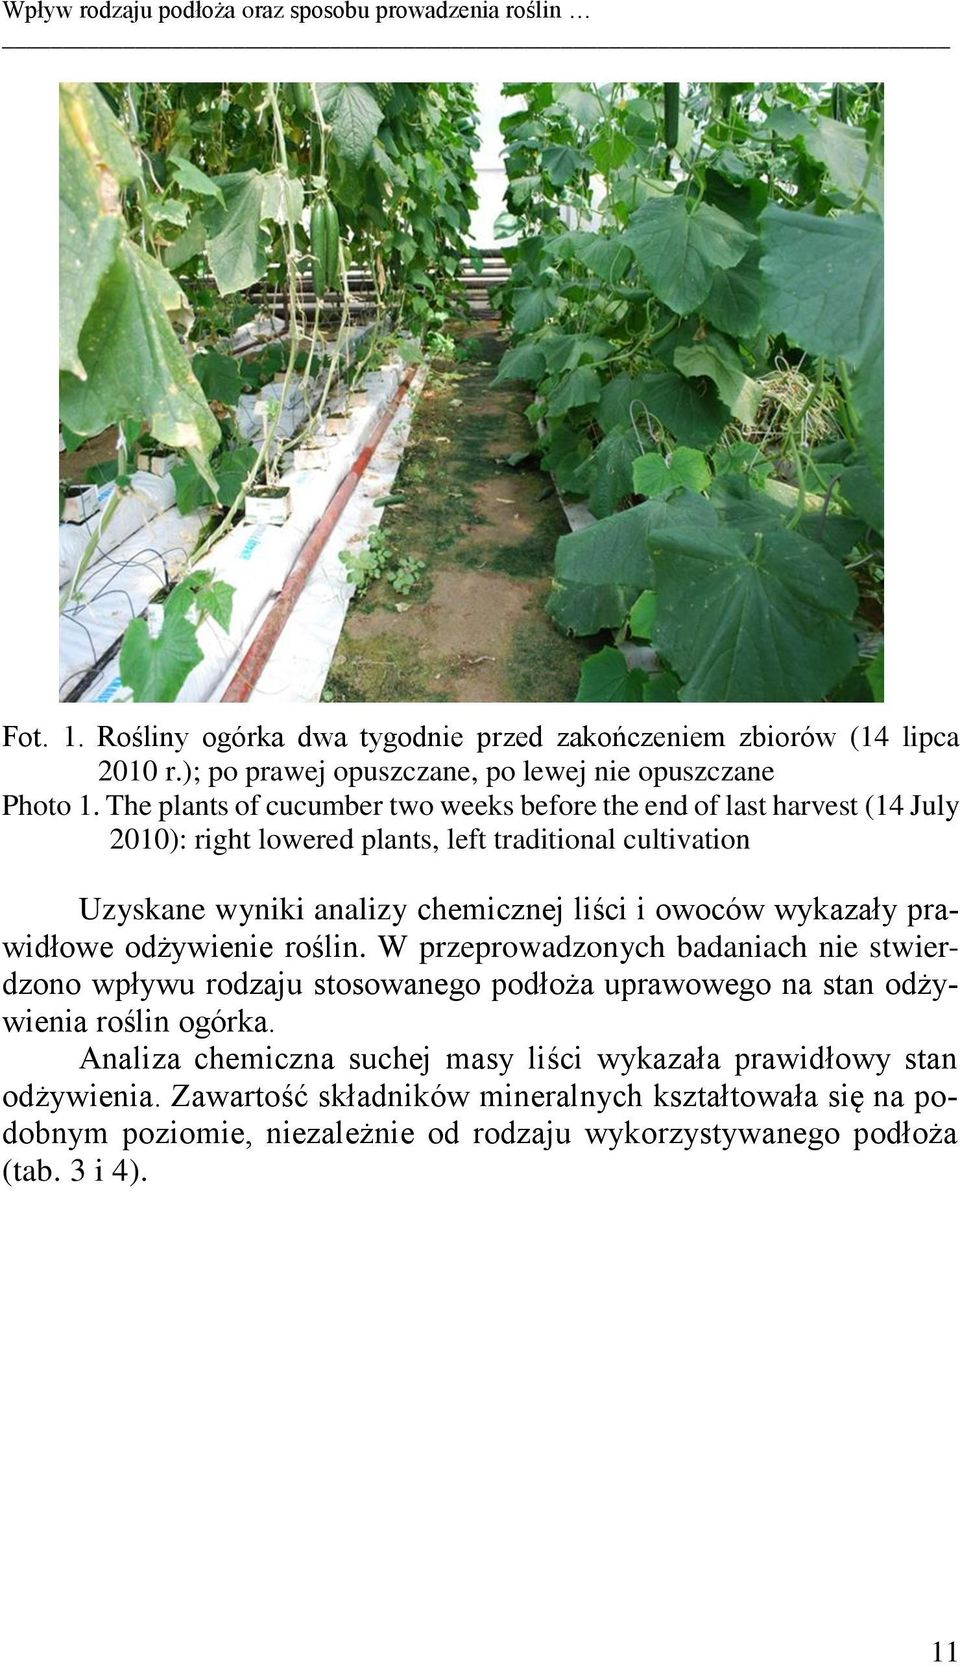 The plants of cucumber two weeks before the end of last harvest (14 July 2010): right lowered plants, left traditional cultivation Uzyskane wyniki analizy chemicznej liści i owoców